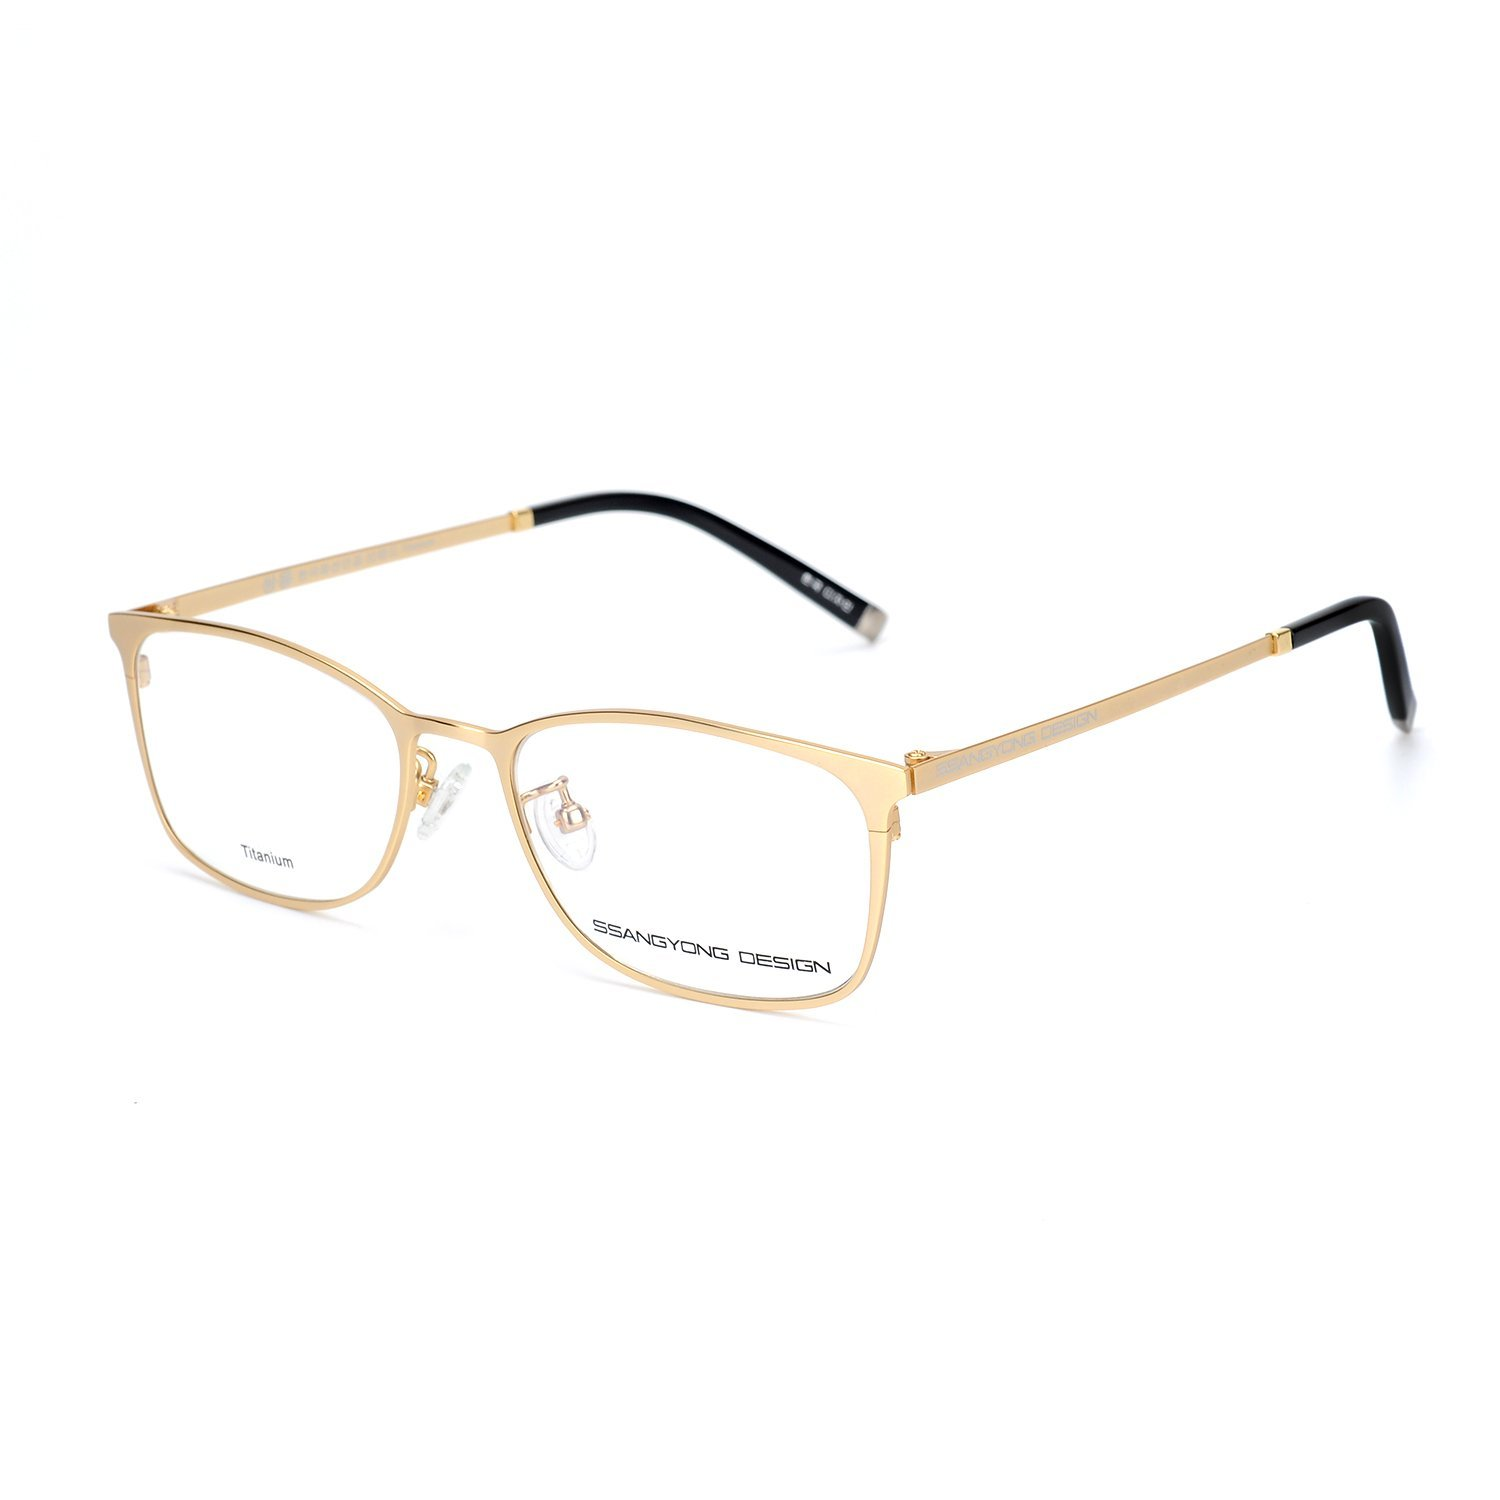 ea110763351 Get Quotations · Eileen Elisa Oval Fashion Titanium Glasses Frame with  Clear Lens Optical Eyeglasses